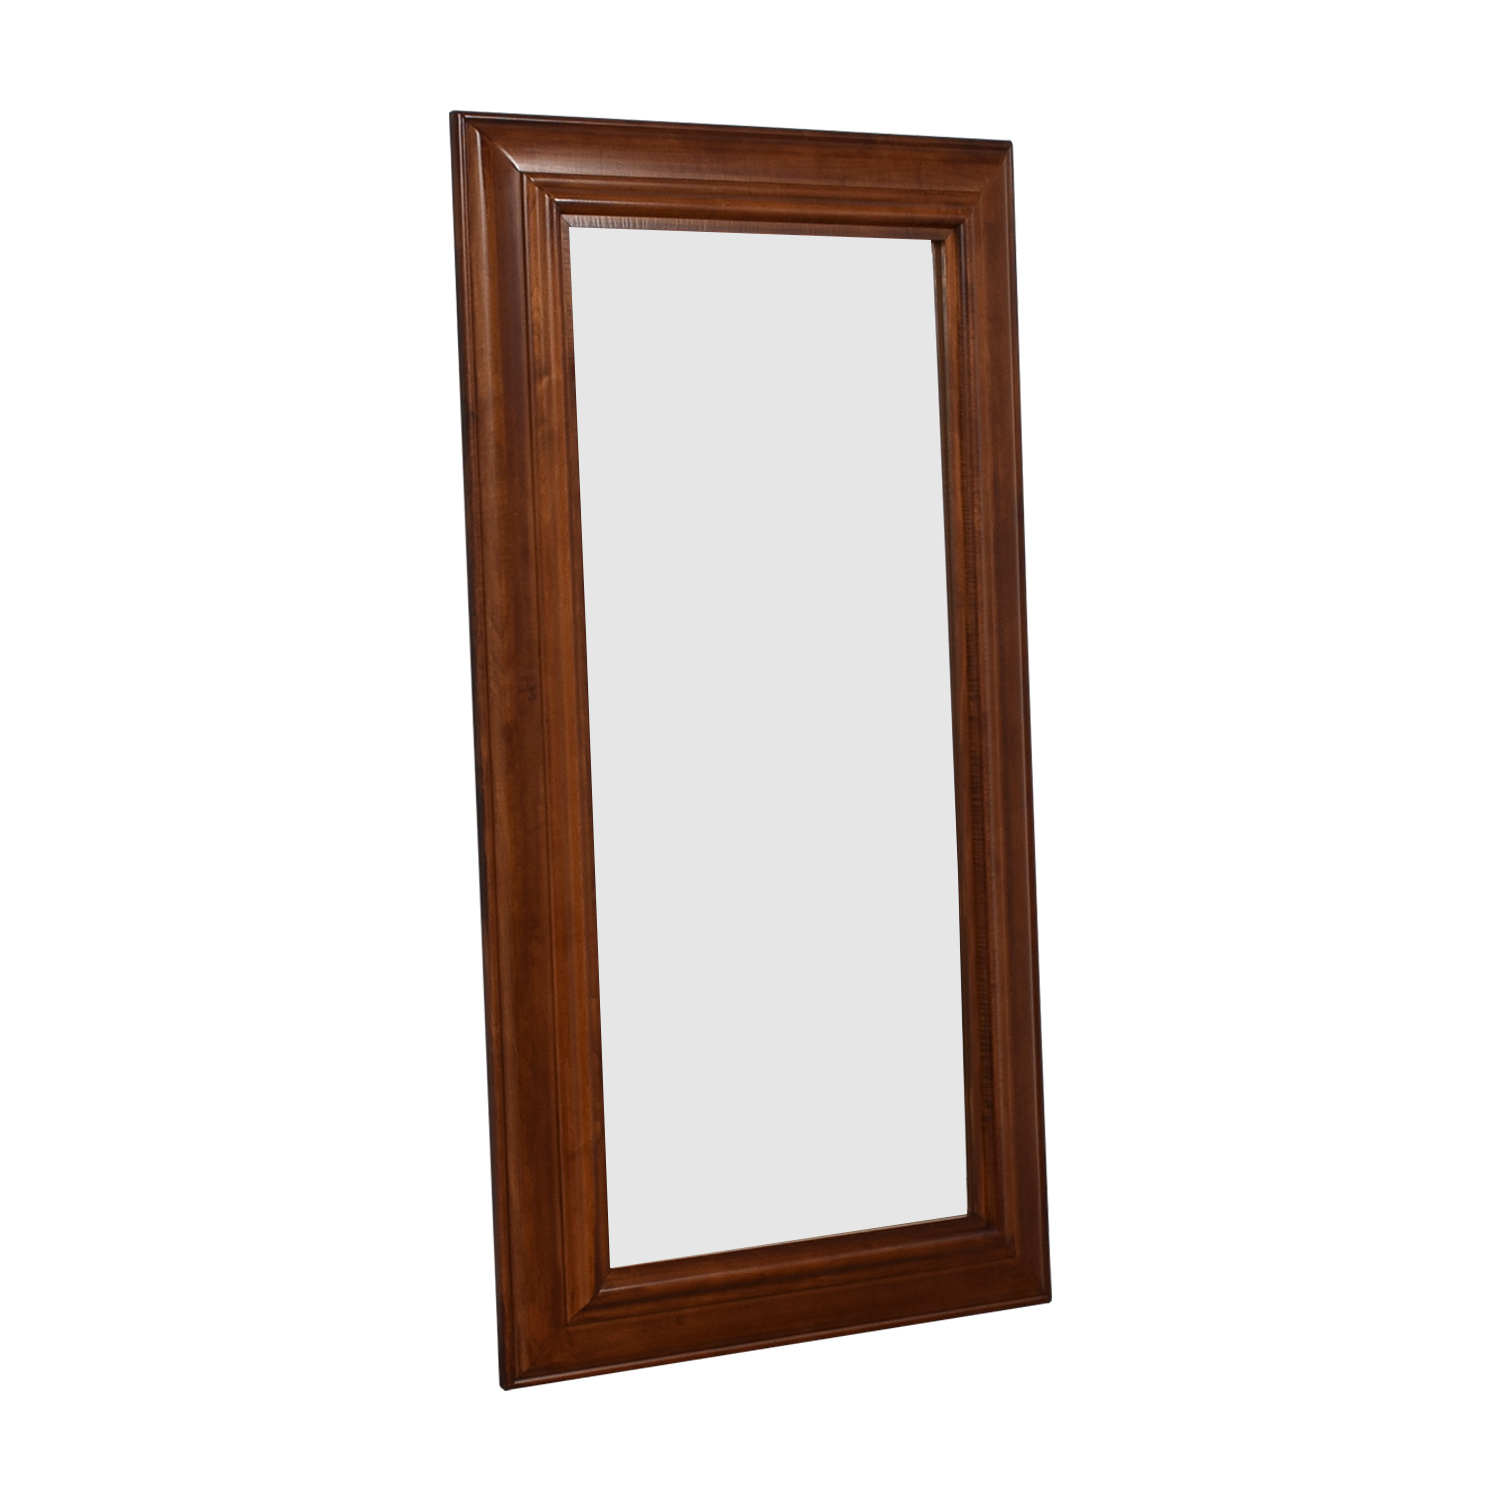 buy Pottery Barn Pottery Barn Solano Wood Framed Floor Mirror online